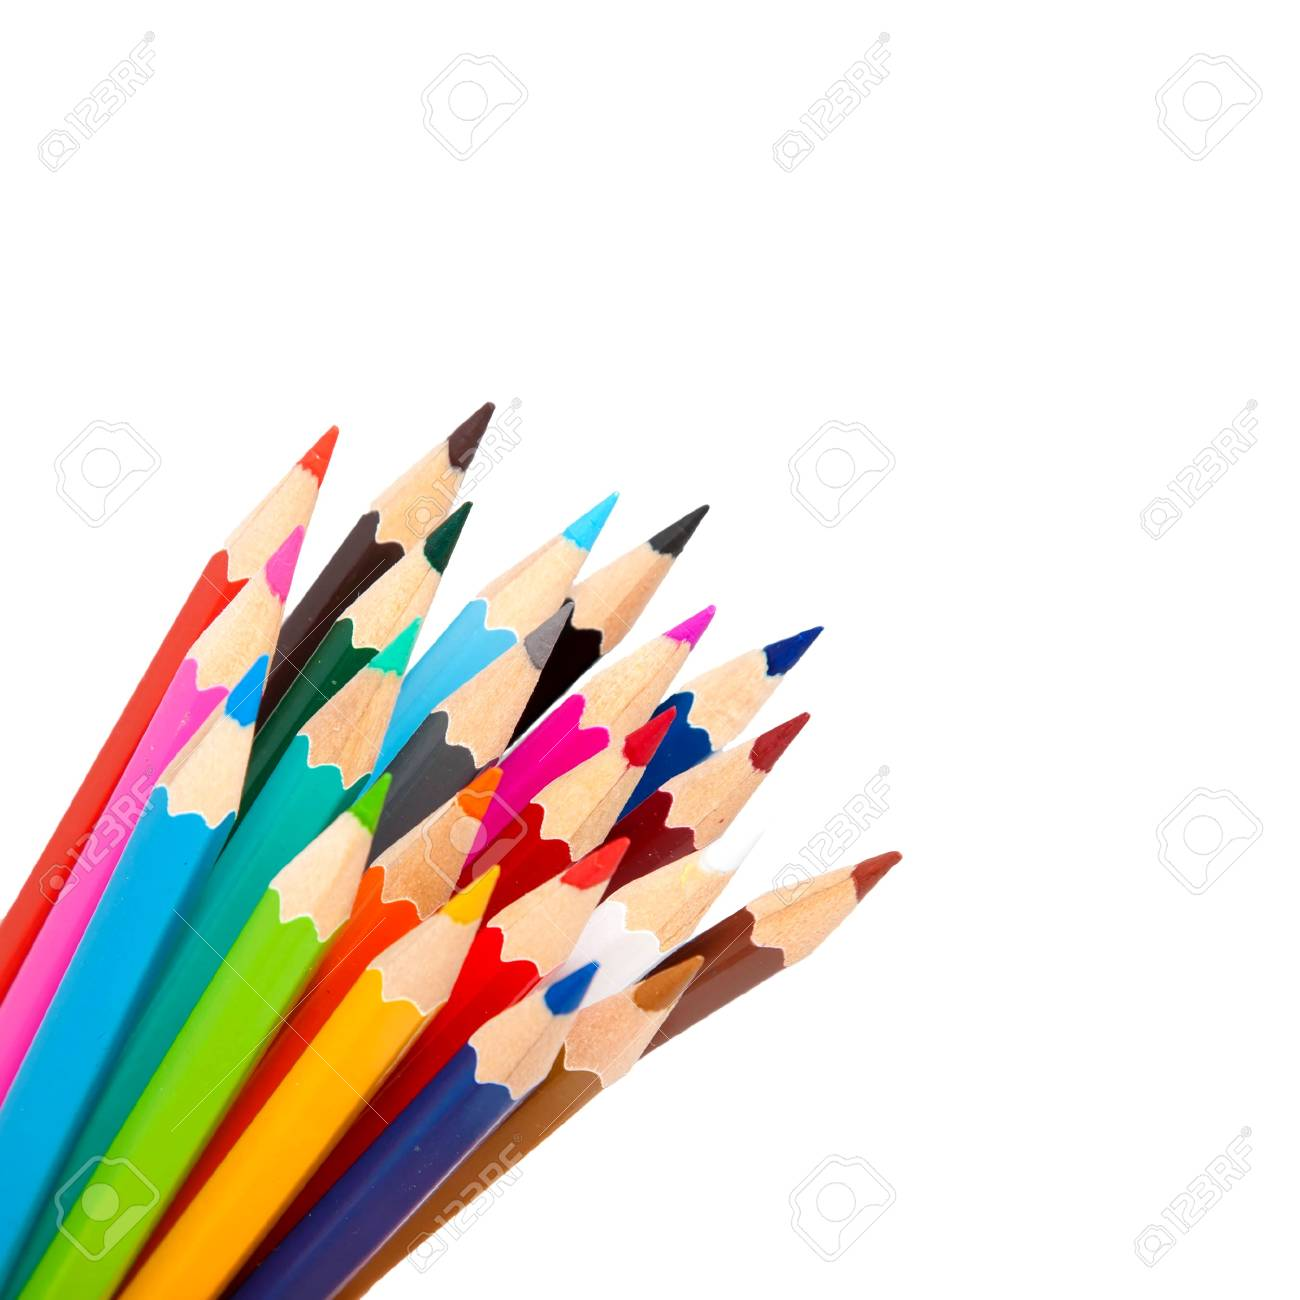 color pencils as a bunch or bouquet isolated on a white background Stock Photo - 15162418